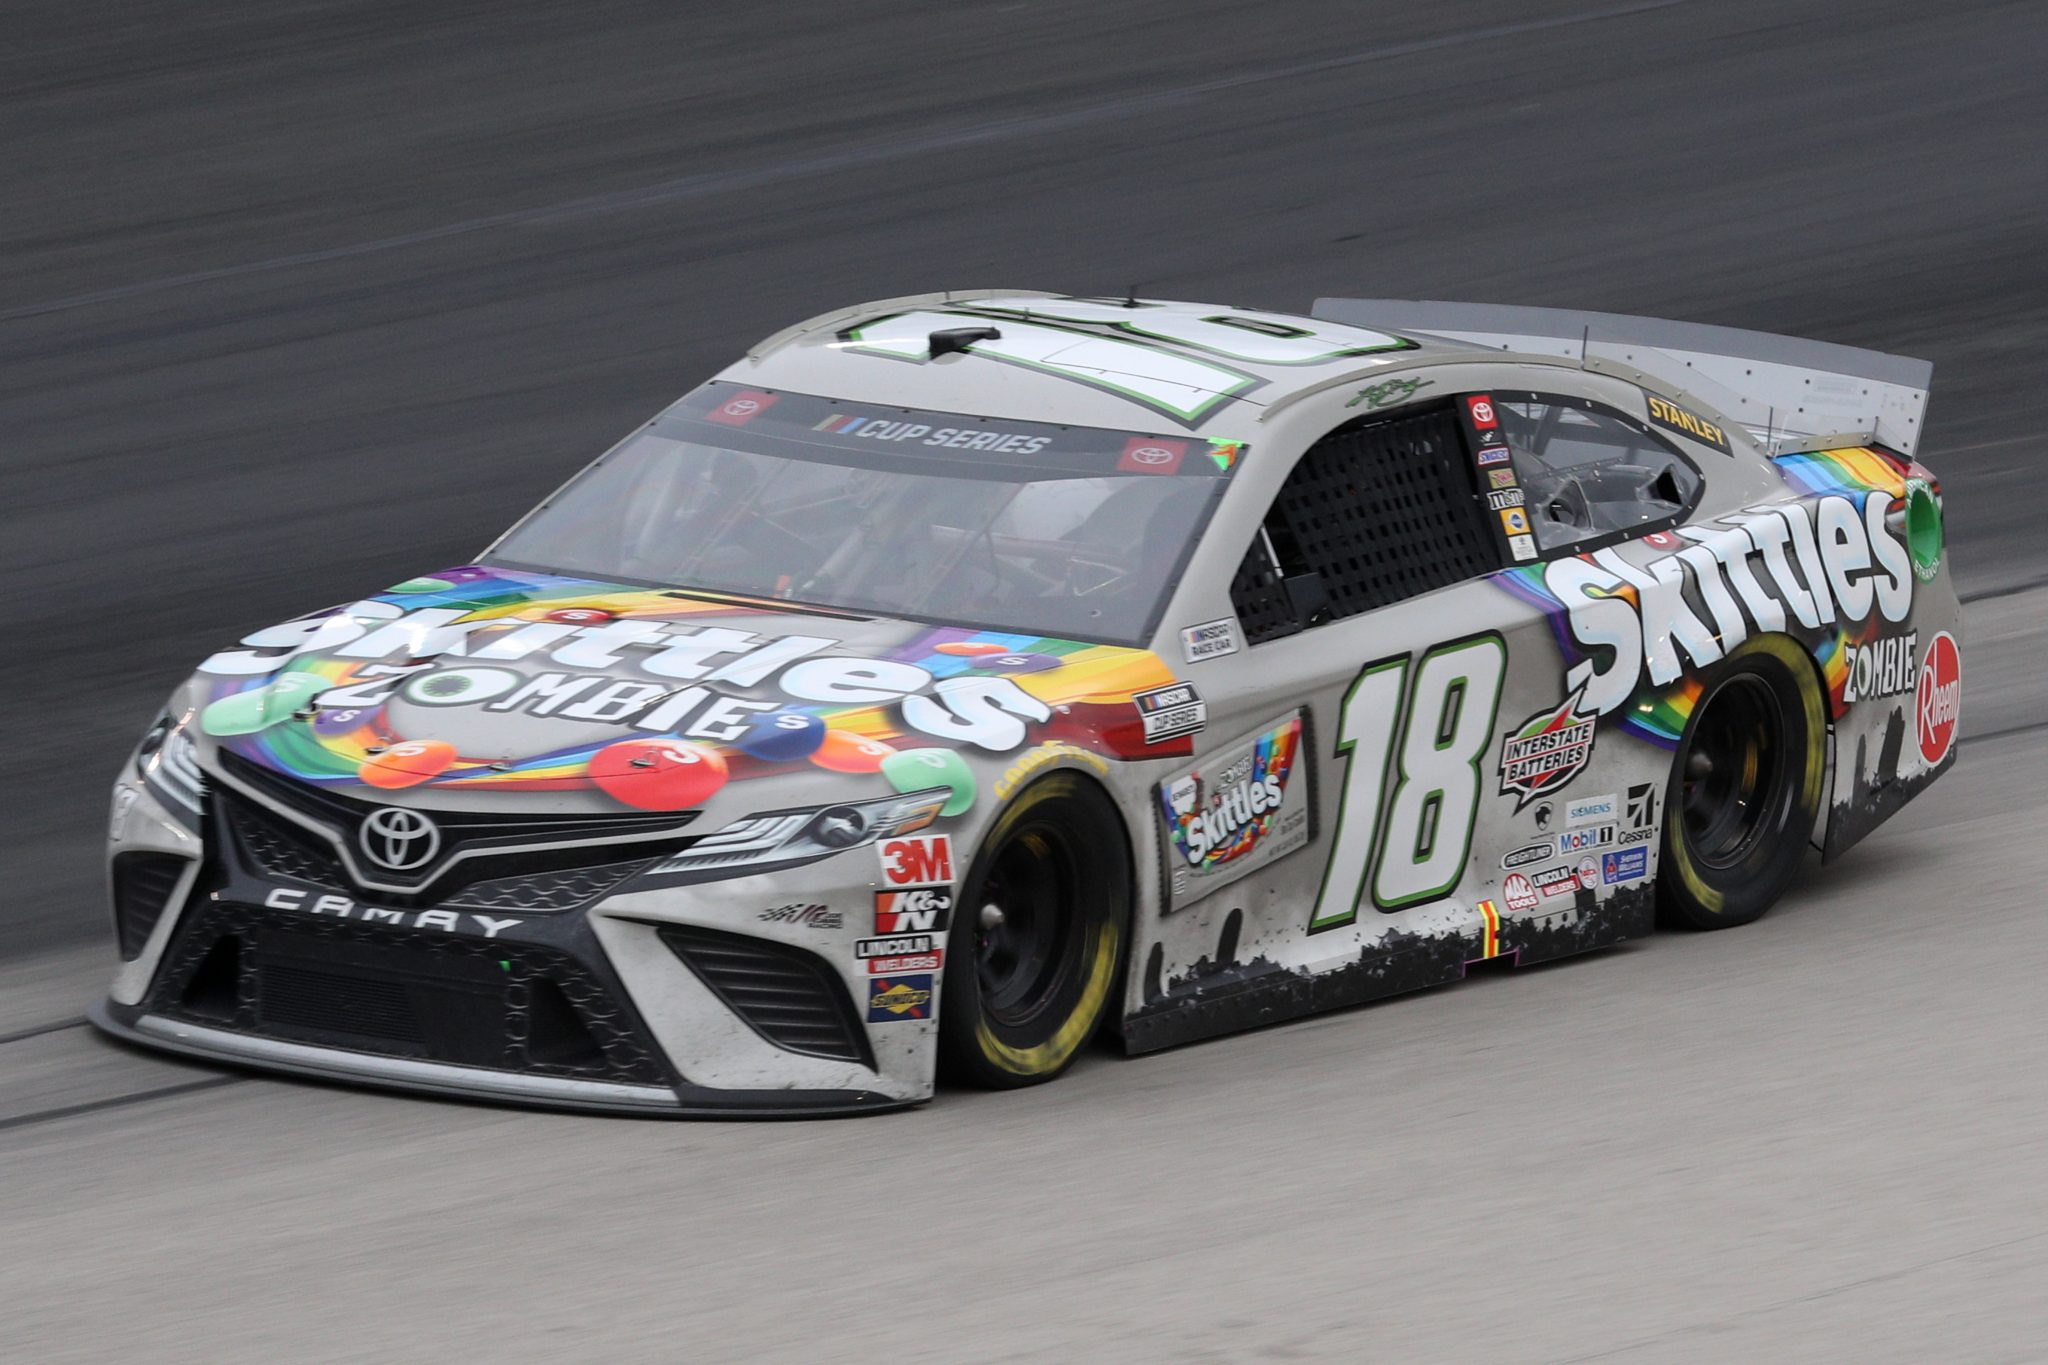 FORT WORTH, TEXAS - OCTOBER 28: Kyle Busch, driver of the #18 Skittles Zombie Toyota, drives during the NASCAR Cup Series Autotrader EchoPark Automotive 500 at Texas Motor Speedway on October 28, 2020 in Fort Worth, Texas. (Photo by Chris Graythen/Getty Images) | Getty Images